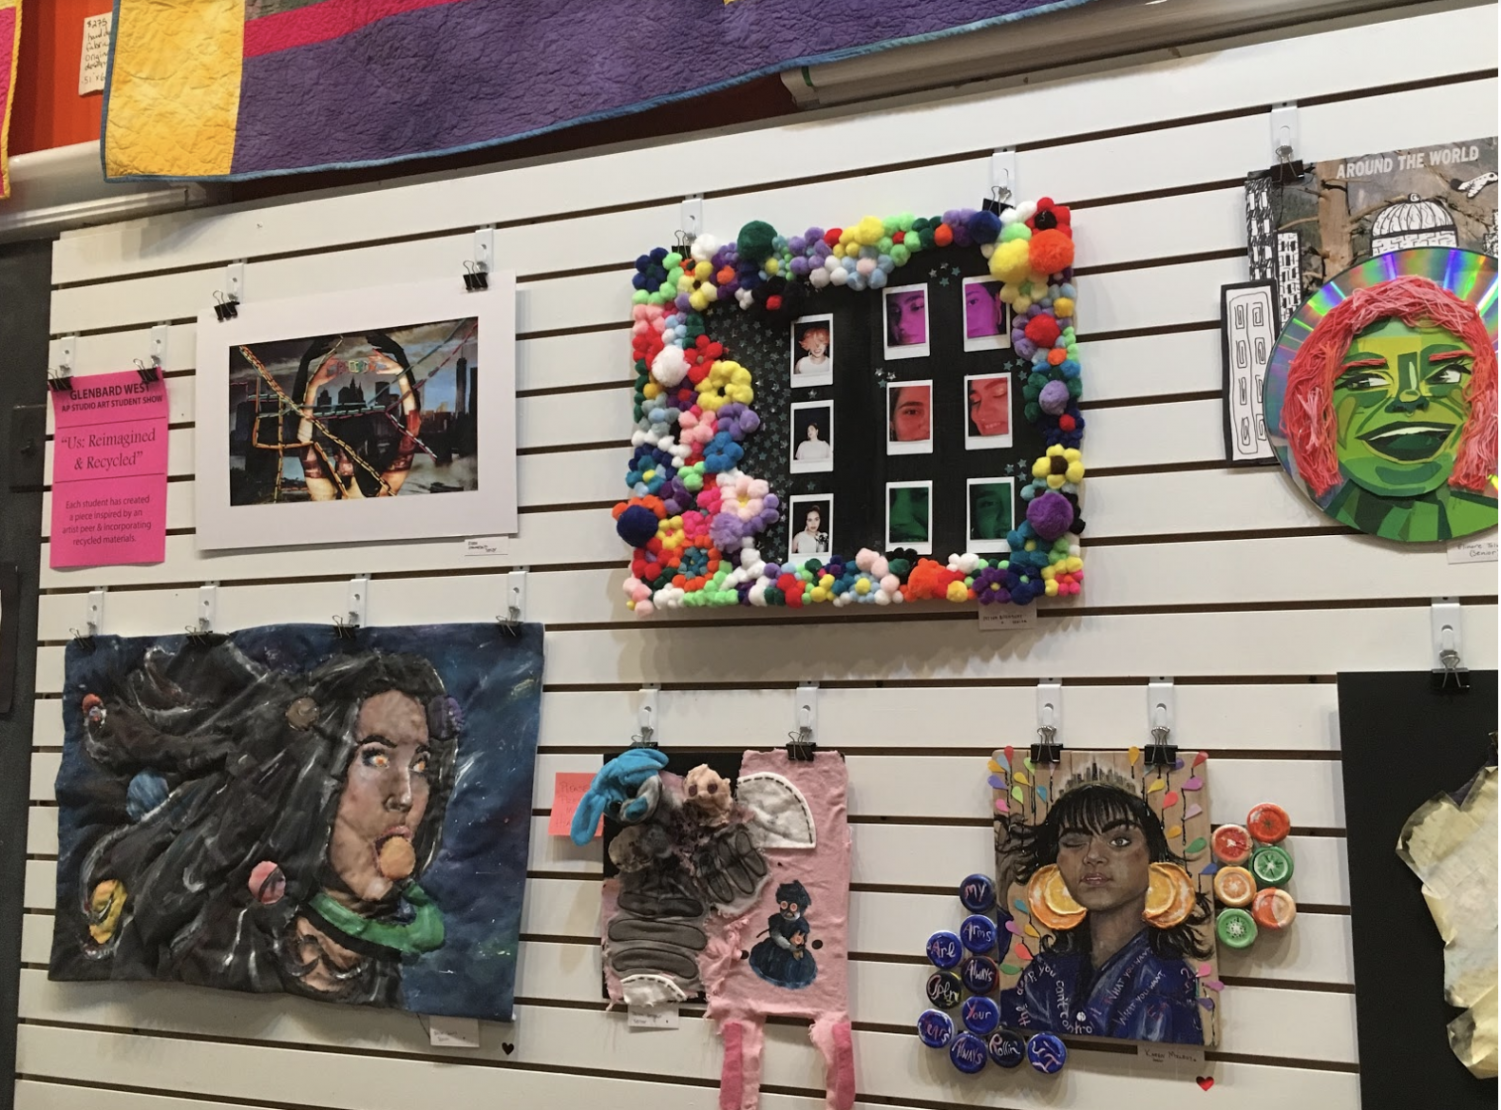 Art Pieces done by the GBW AP Art Students that are currently on display right now at the heARTfelt Gallery. These art pieces are also available for purchase to the public.